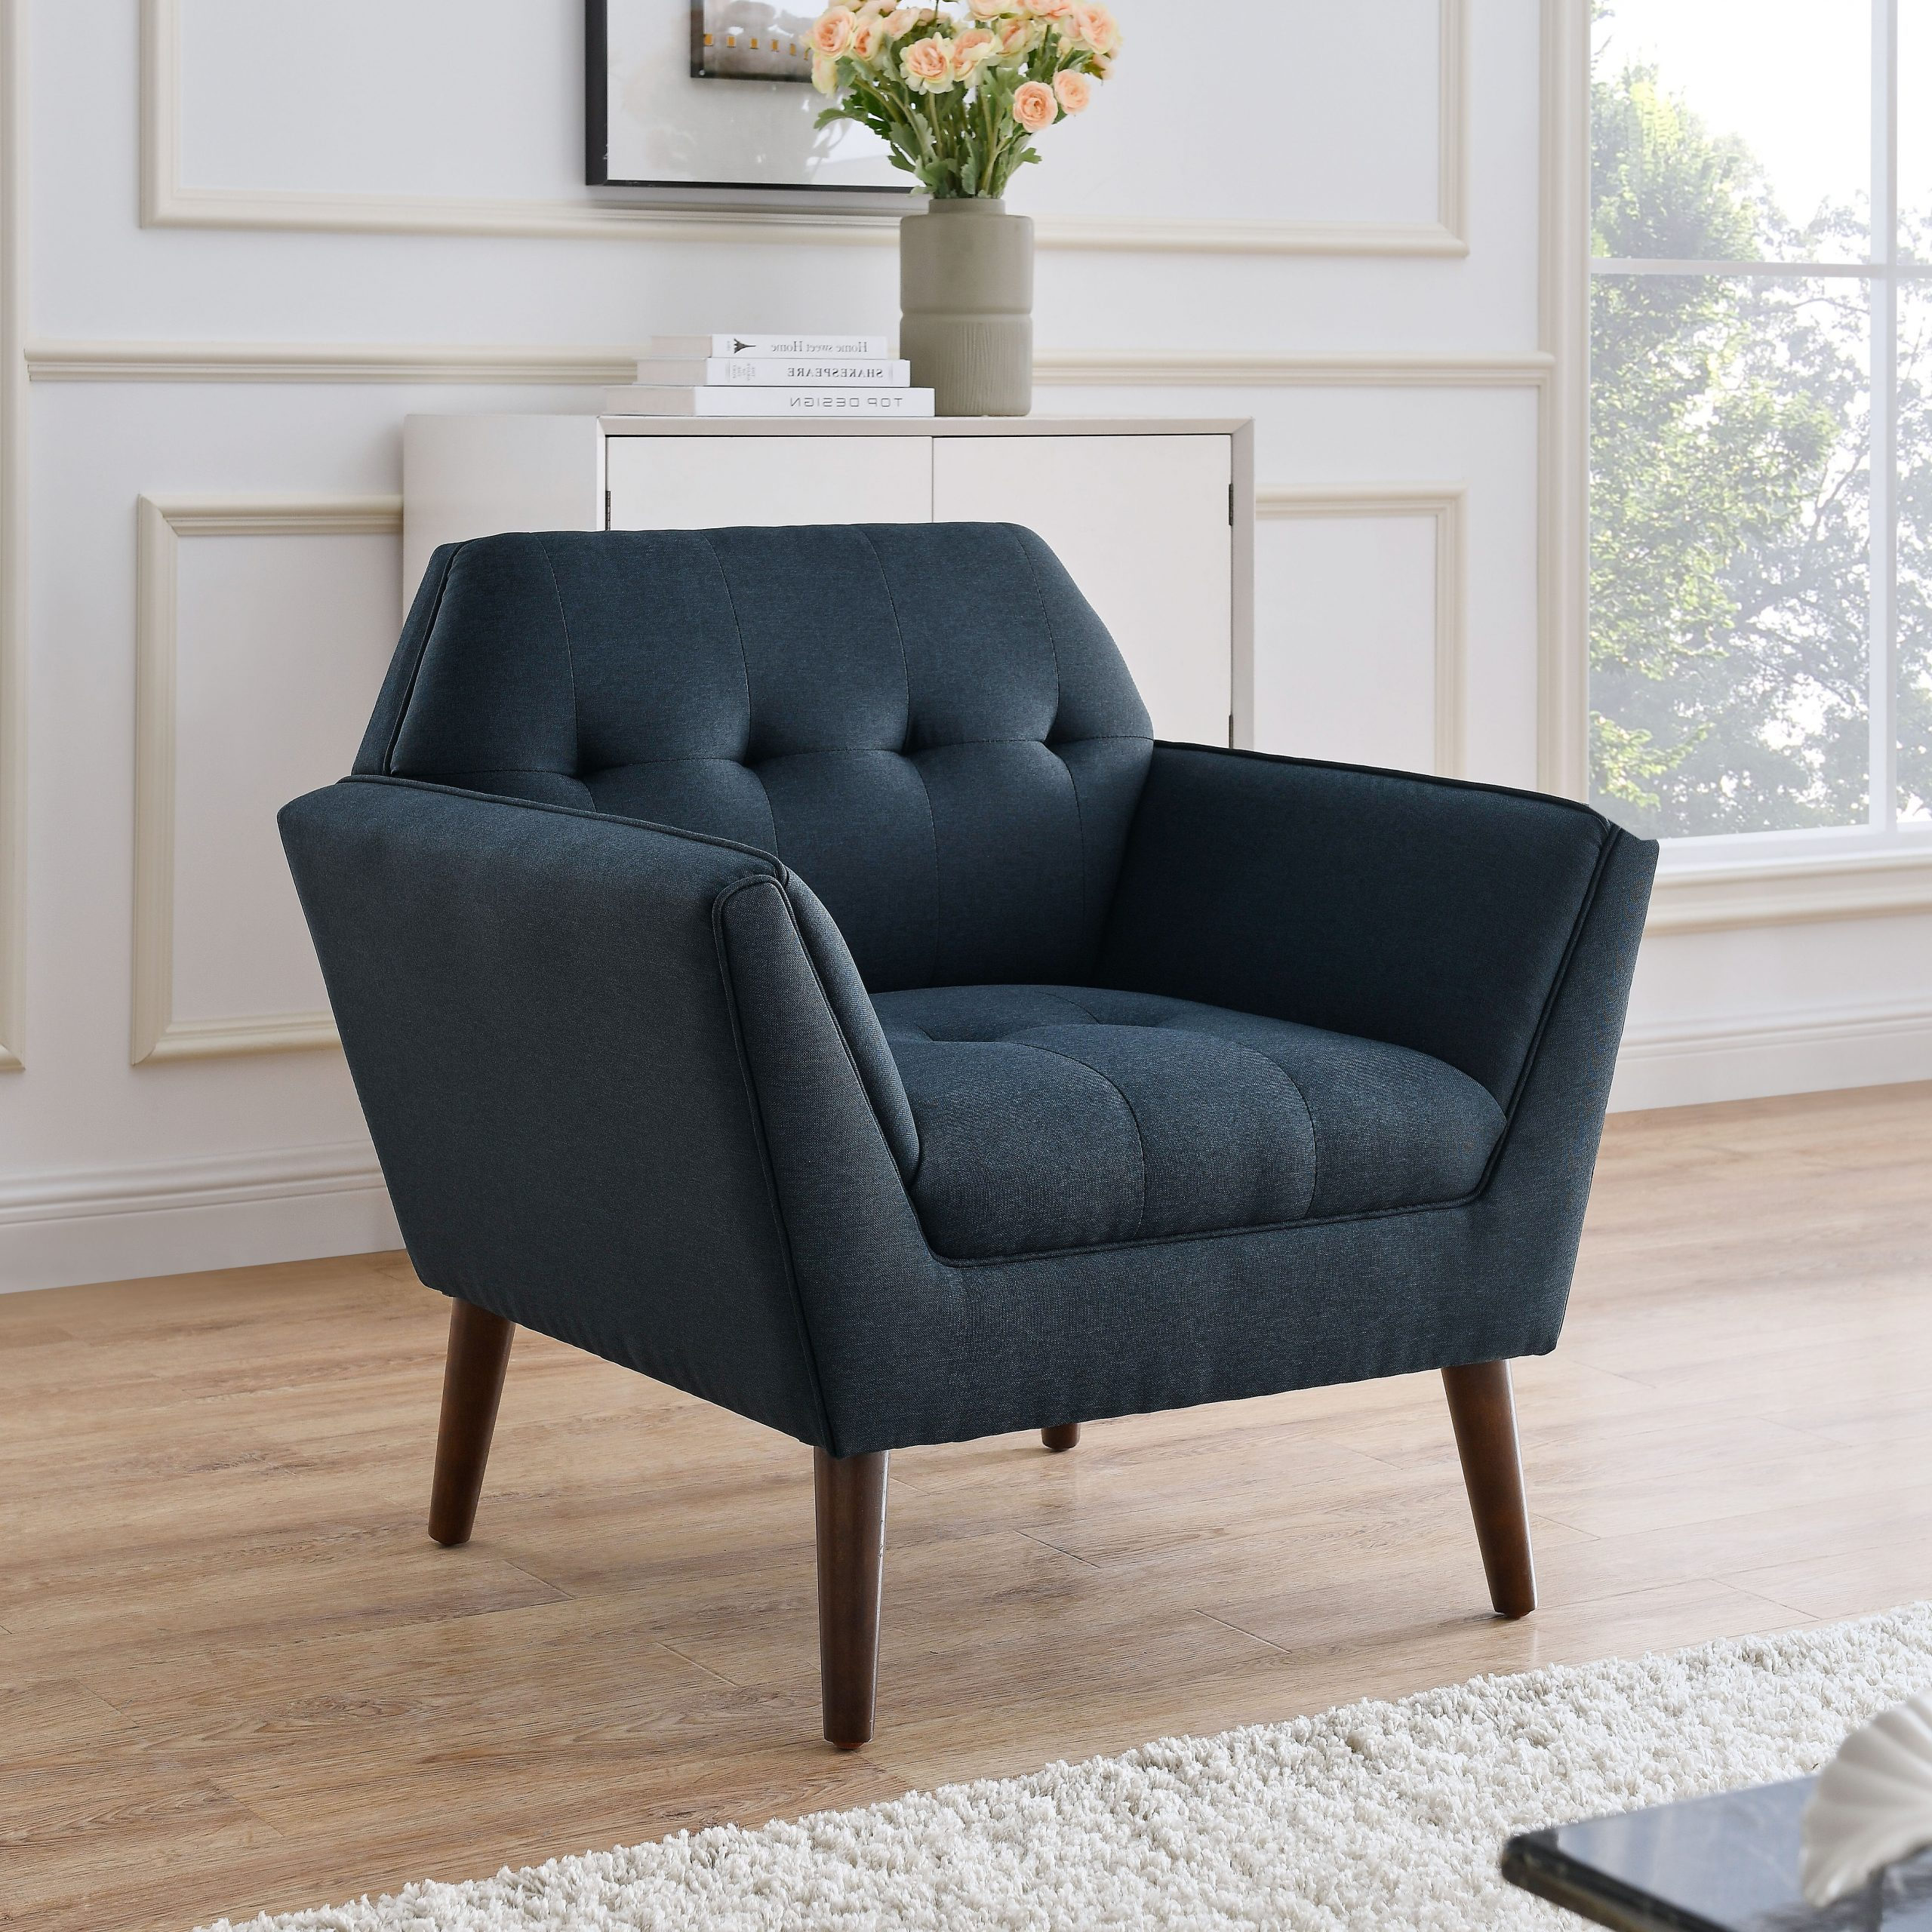 Autenberg Armchairs With Best And Newest Glenna Estee Accent Armchair (View 8 of 20)